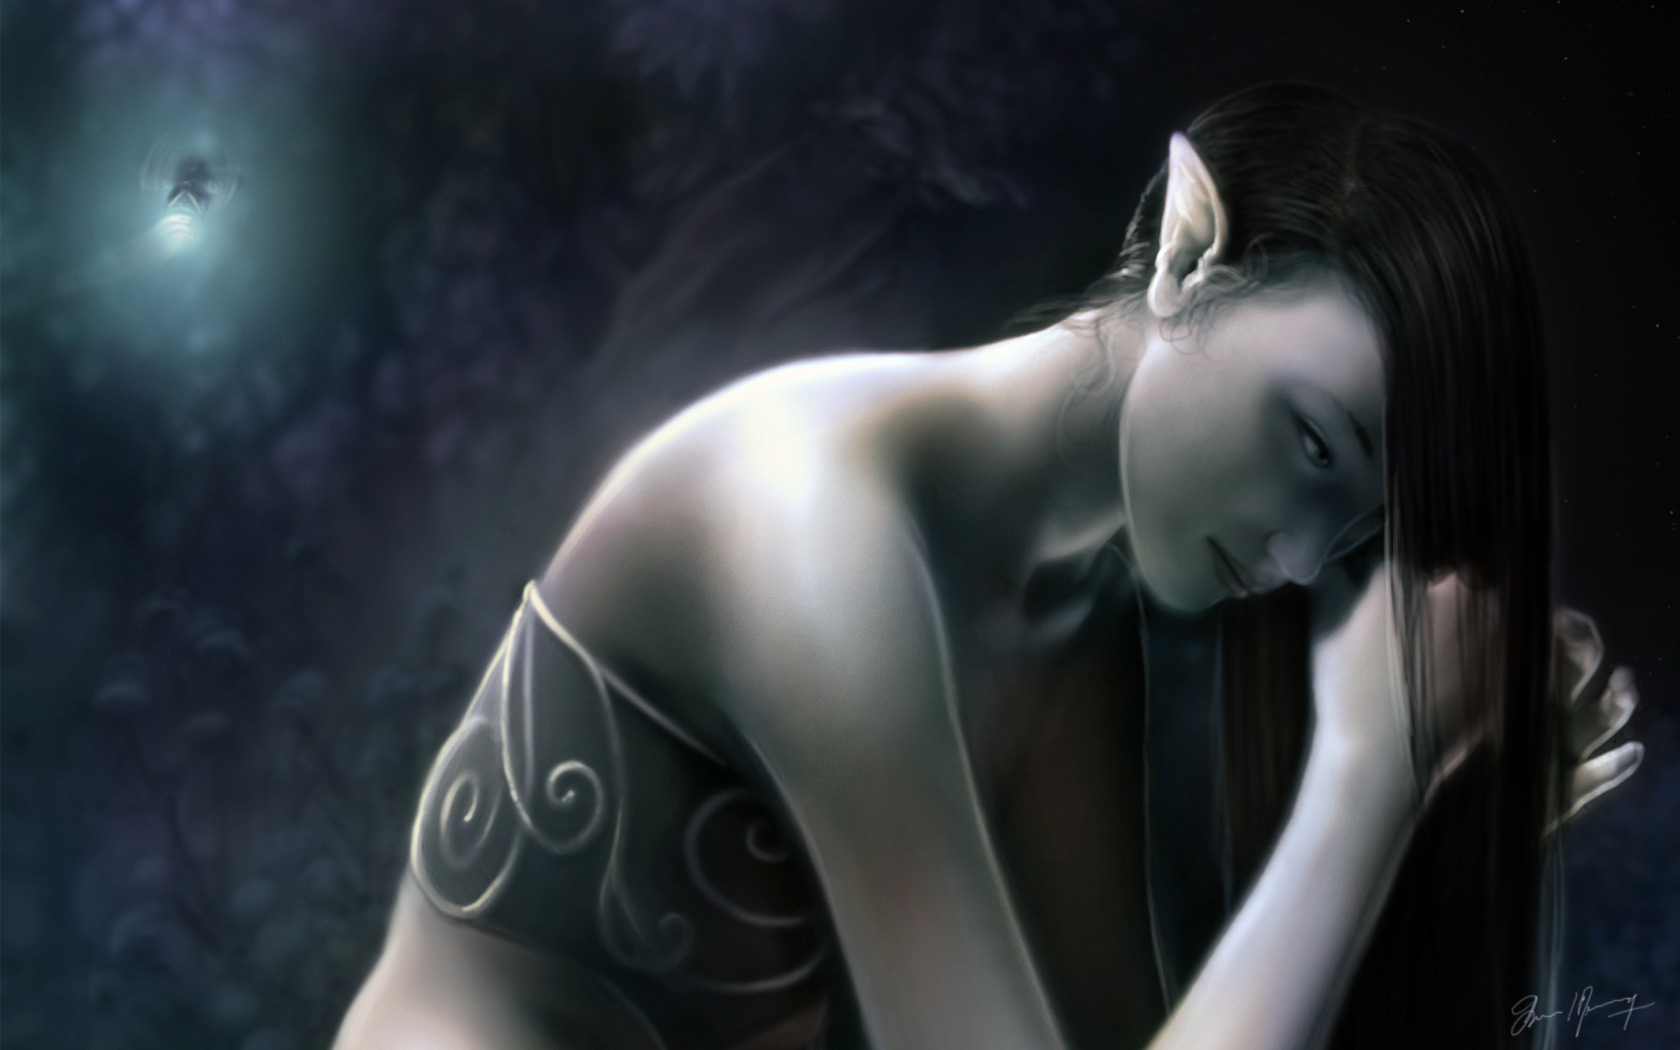 Gallery the dark elf lover 3d pic  pron pictures